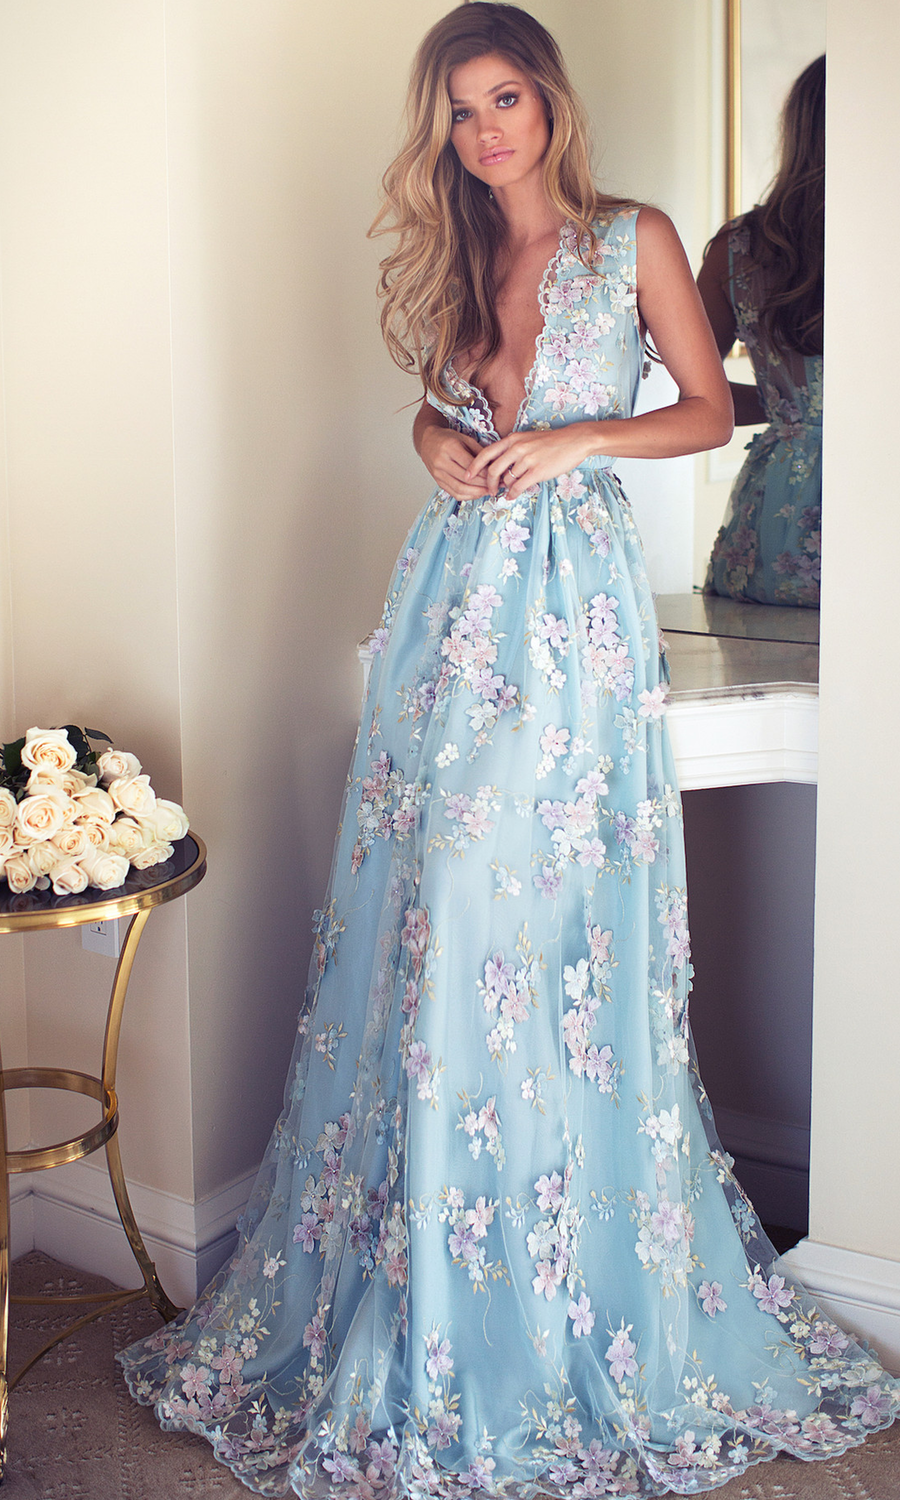 Lurelly belle lookbook wish we could find this for a bridesmaid